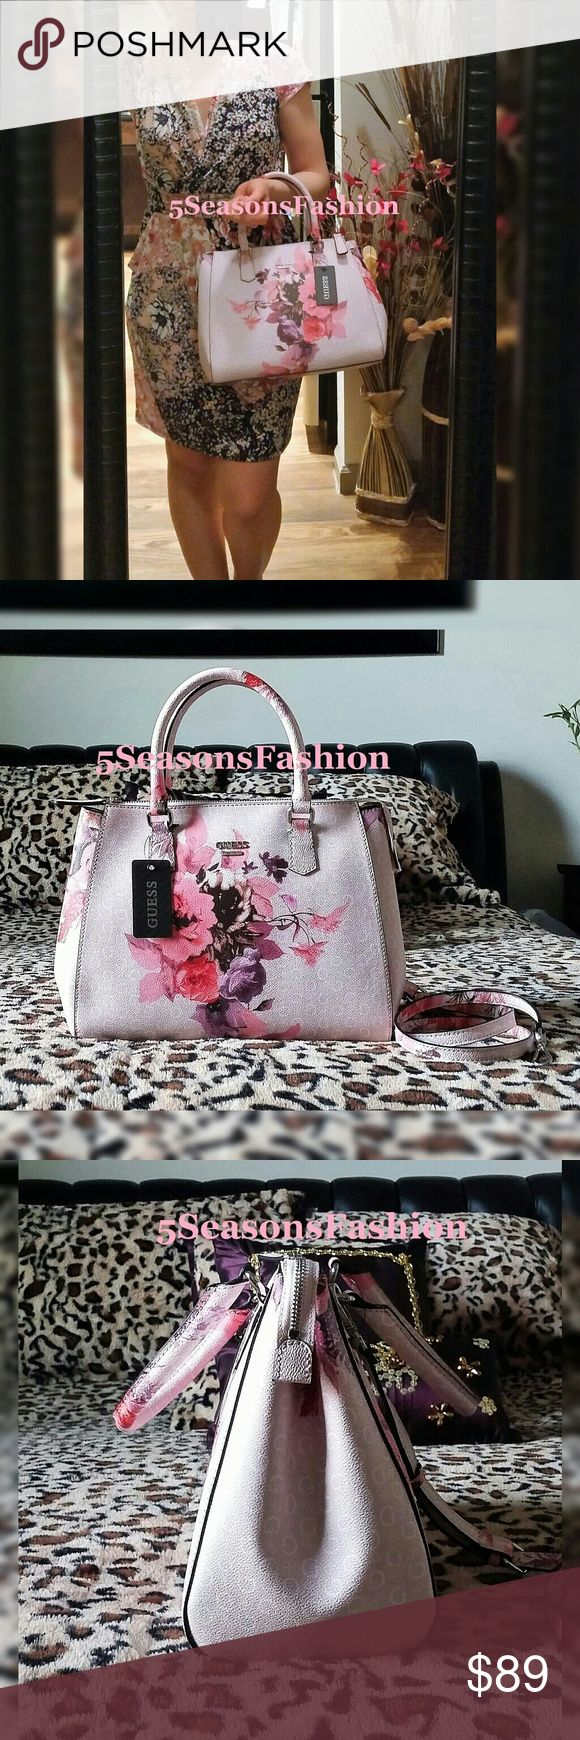 """GUESS Blush Pink FLORAL Satchel LOGO Bag BRAND NEW WITH TAGS! Stunning print handbag from Guess. Blush pink with Guess logo print and beautiful pink and purple florals. MUST HAVE FOR SUMMER 2017! Fun leopard print liner. Comes with a removable/adjustable shoulder strap. Medium size bag. Measures 13""""Lx9""""Hx5.5""""D. FAUX LEATHER. Textured. Guess Bags Satchels"""